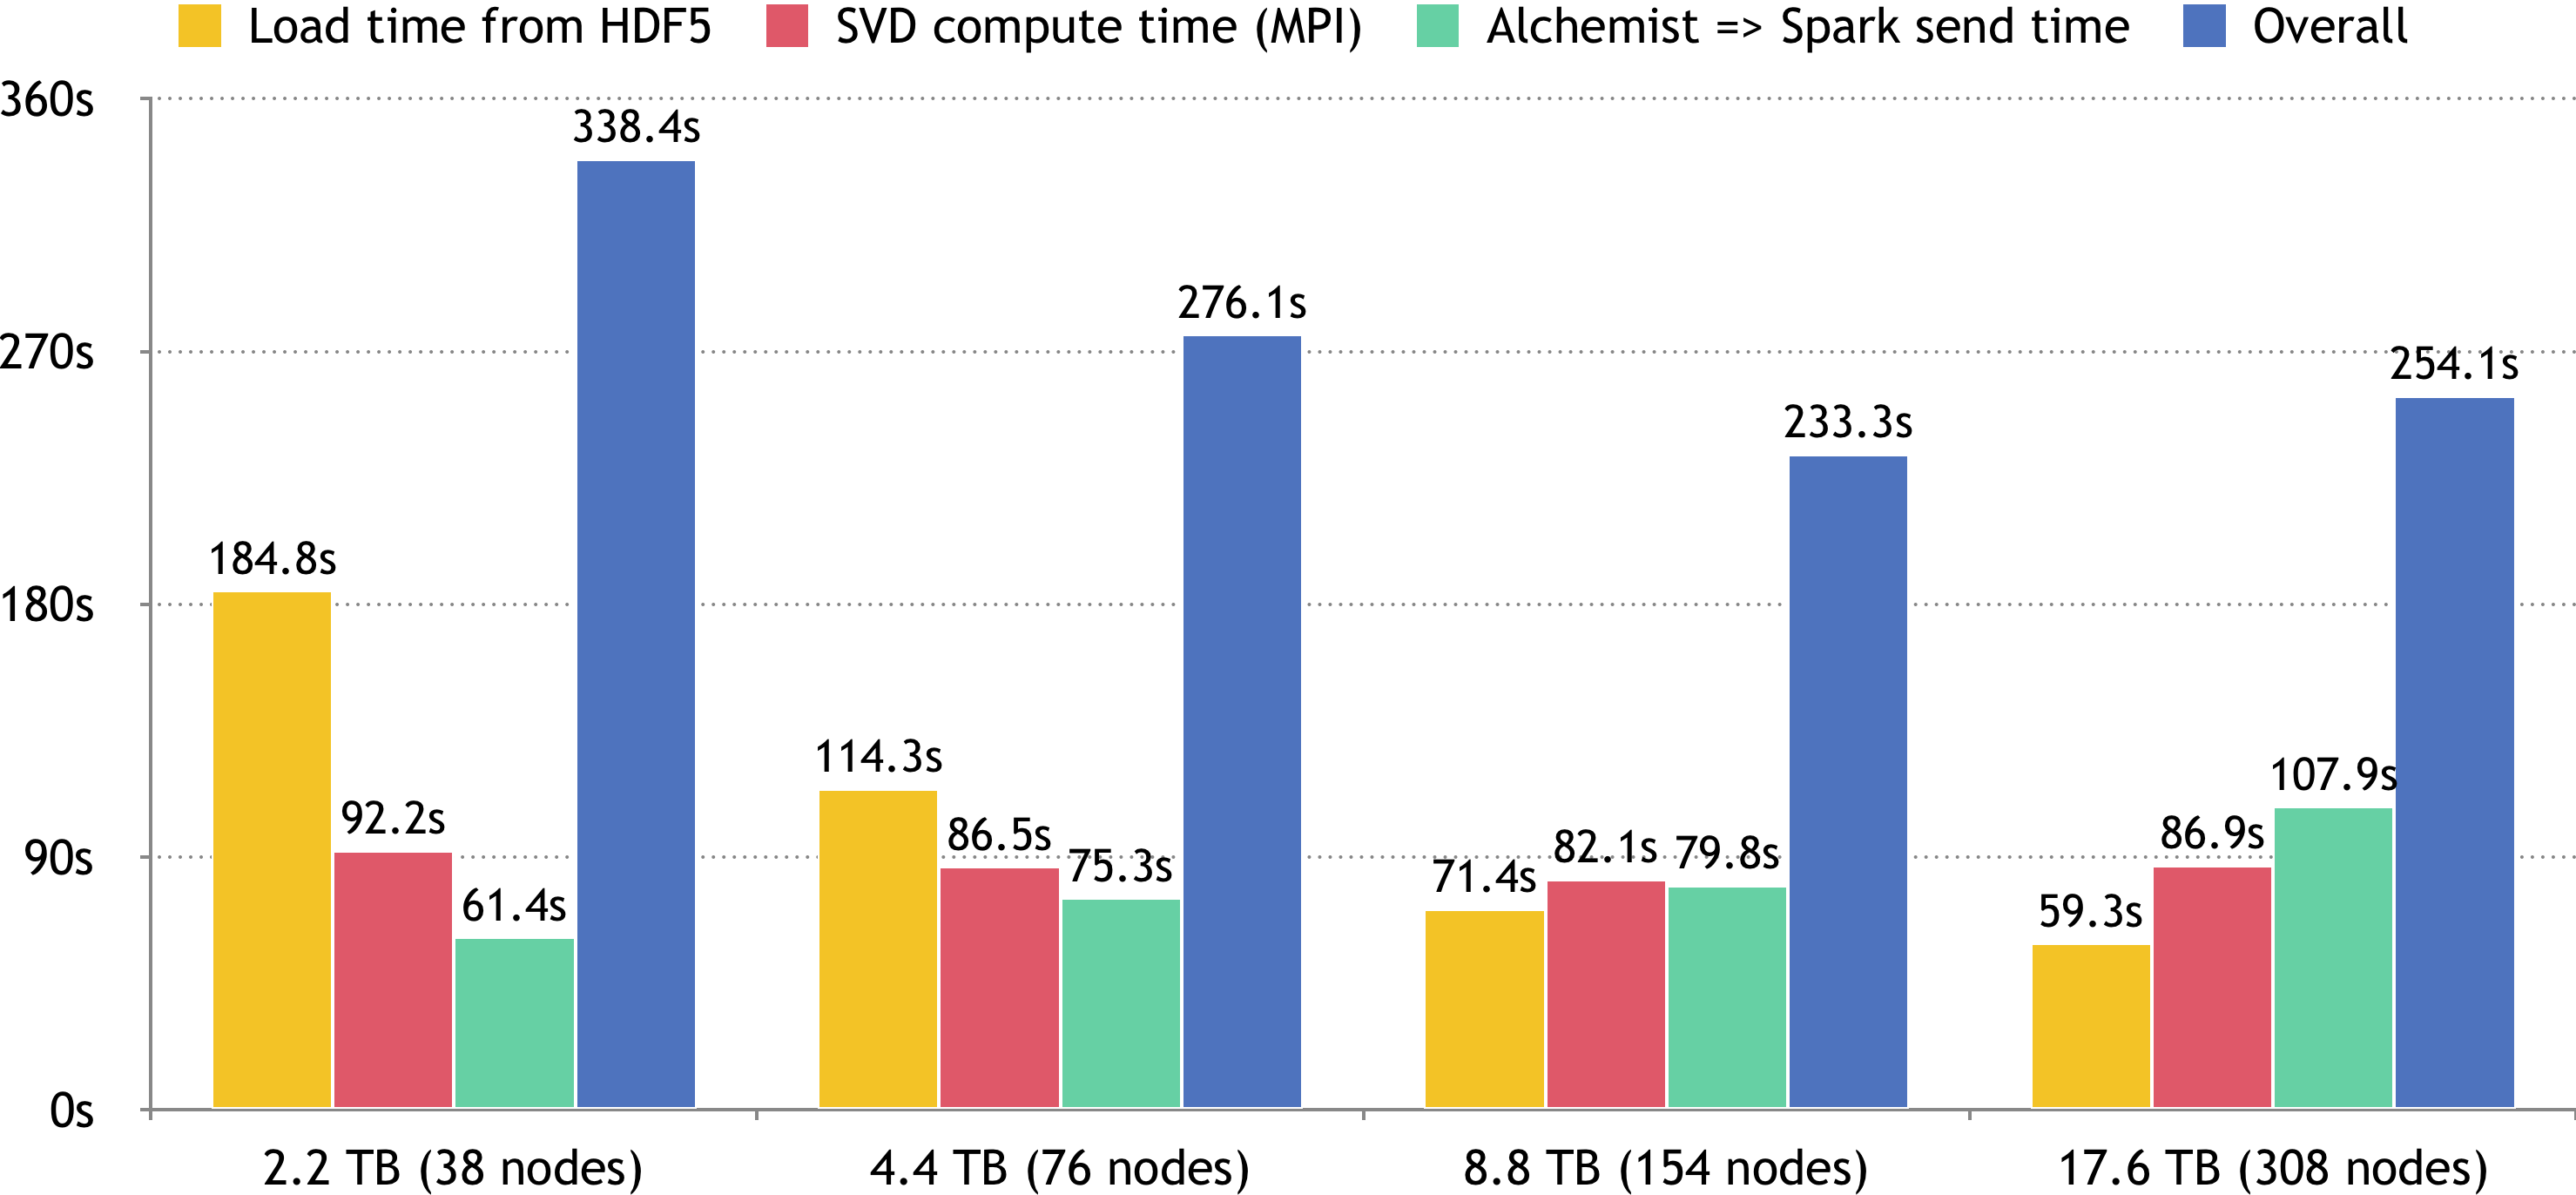 Timing data for SVD of a 2.2TB data set loaded from file and replicated column-wise.